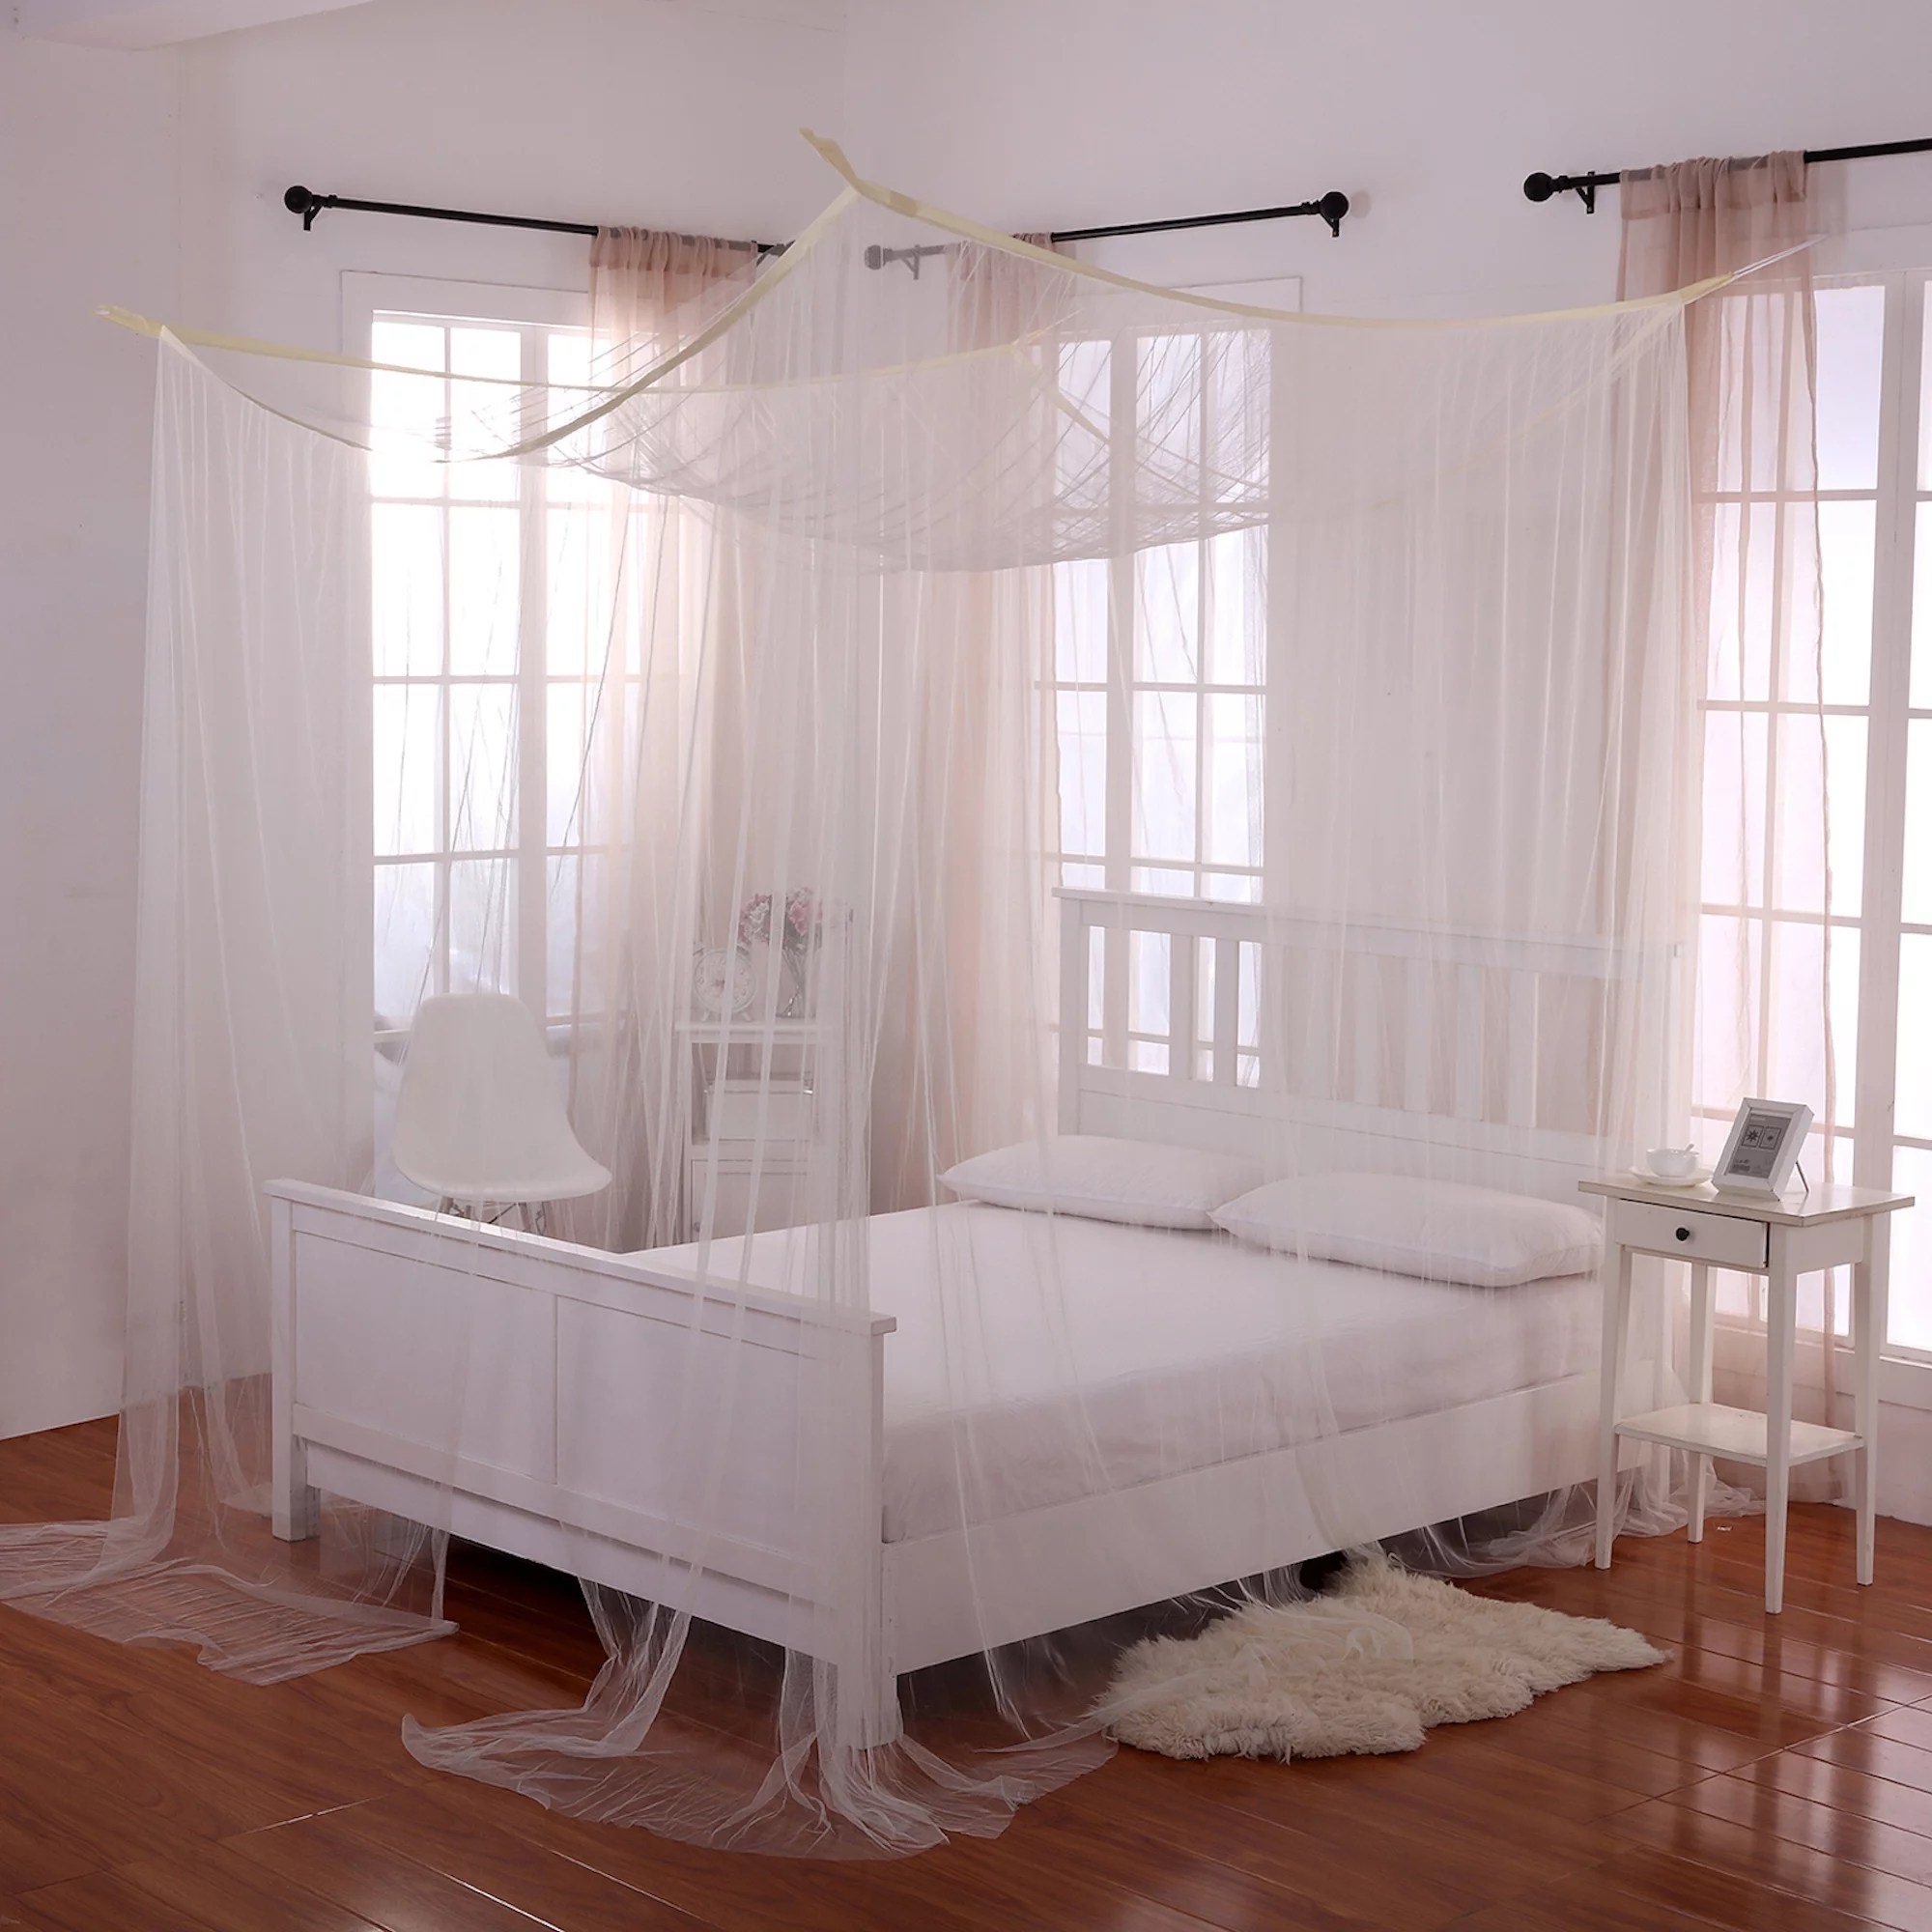 4post Bed White Palace 4 Post Bed Sheer Mosquito Net Panel Canopy